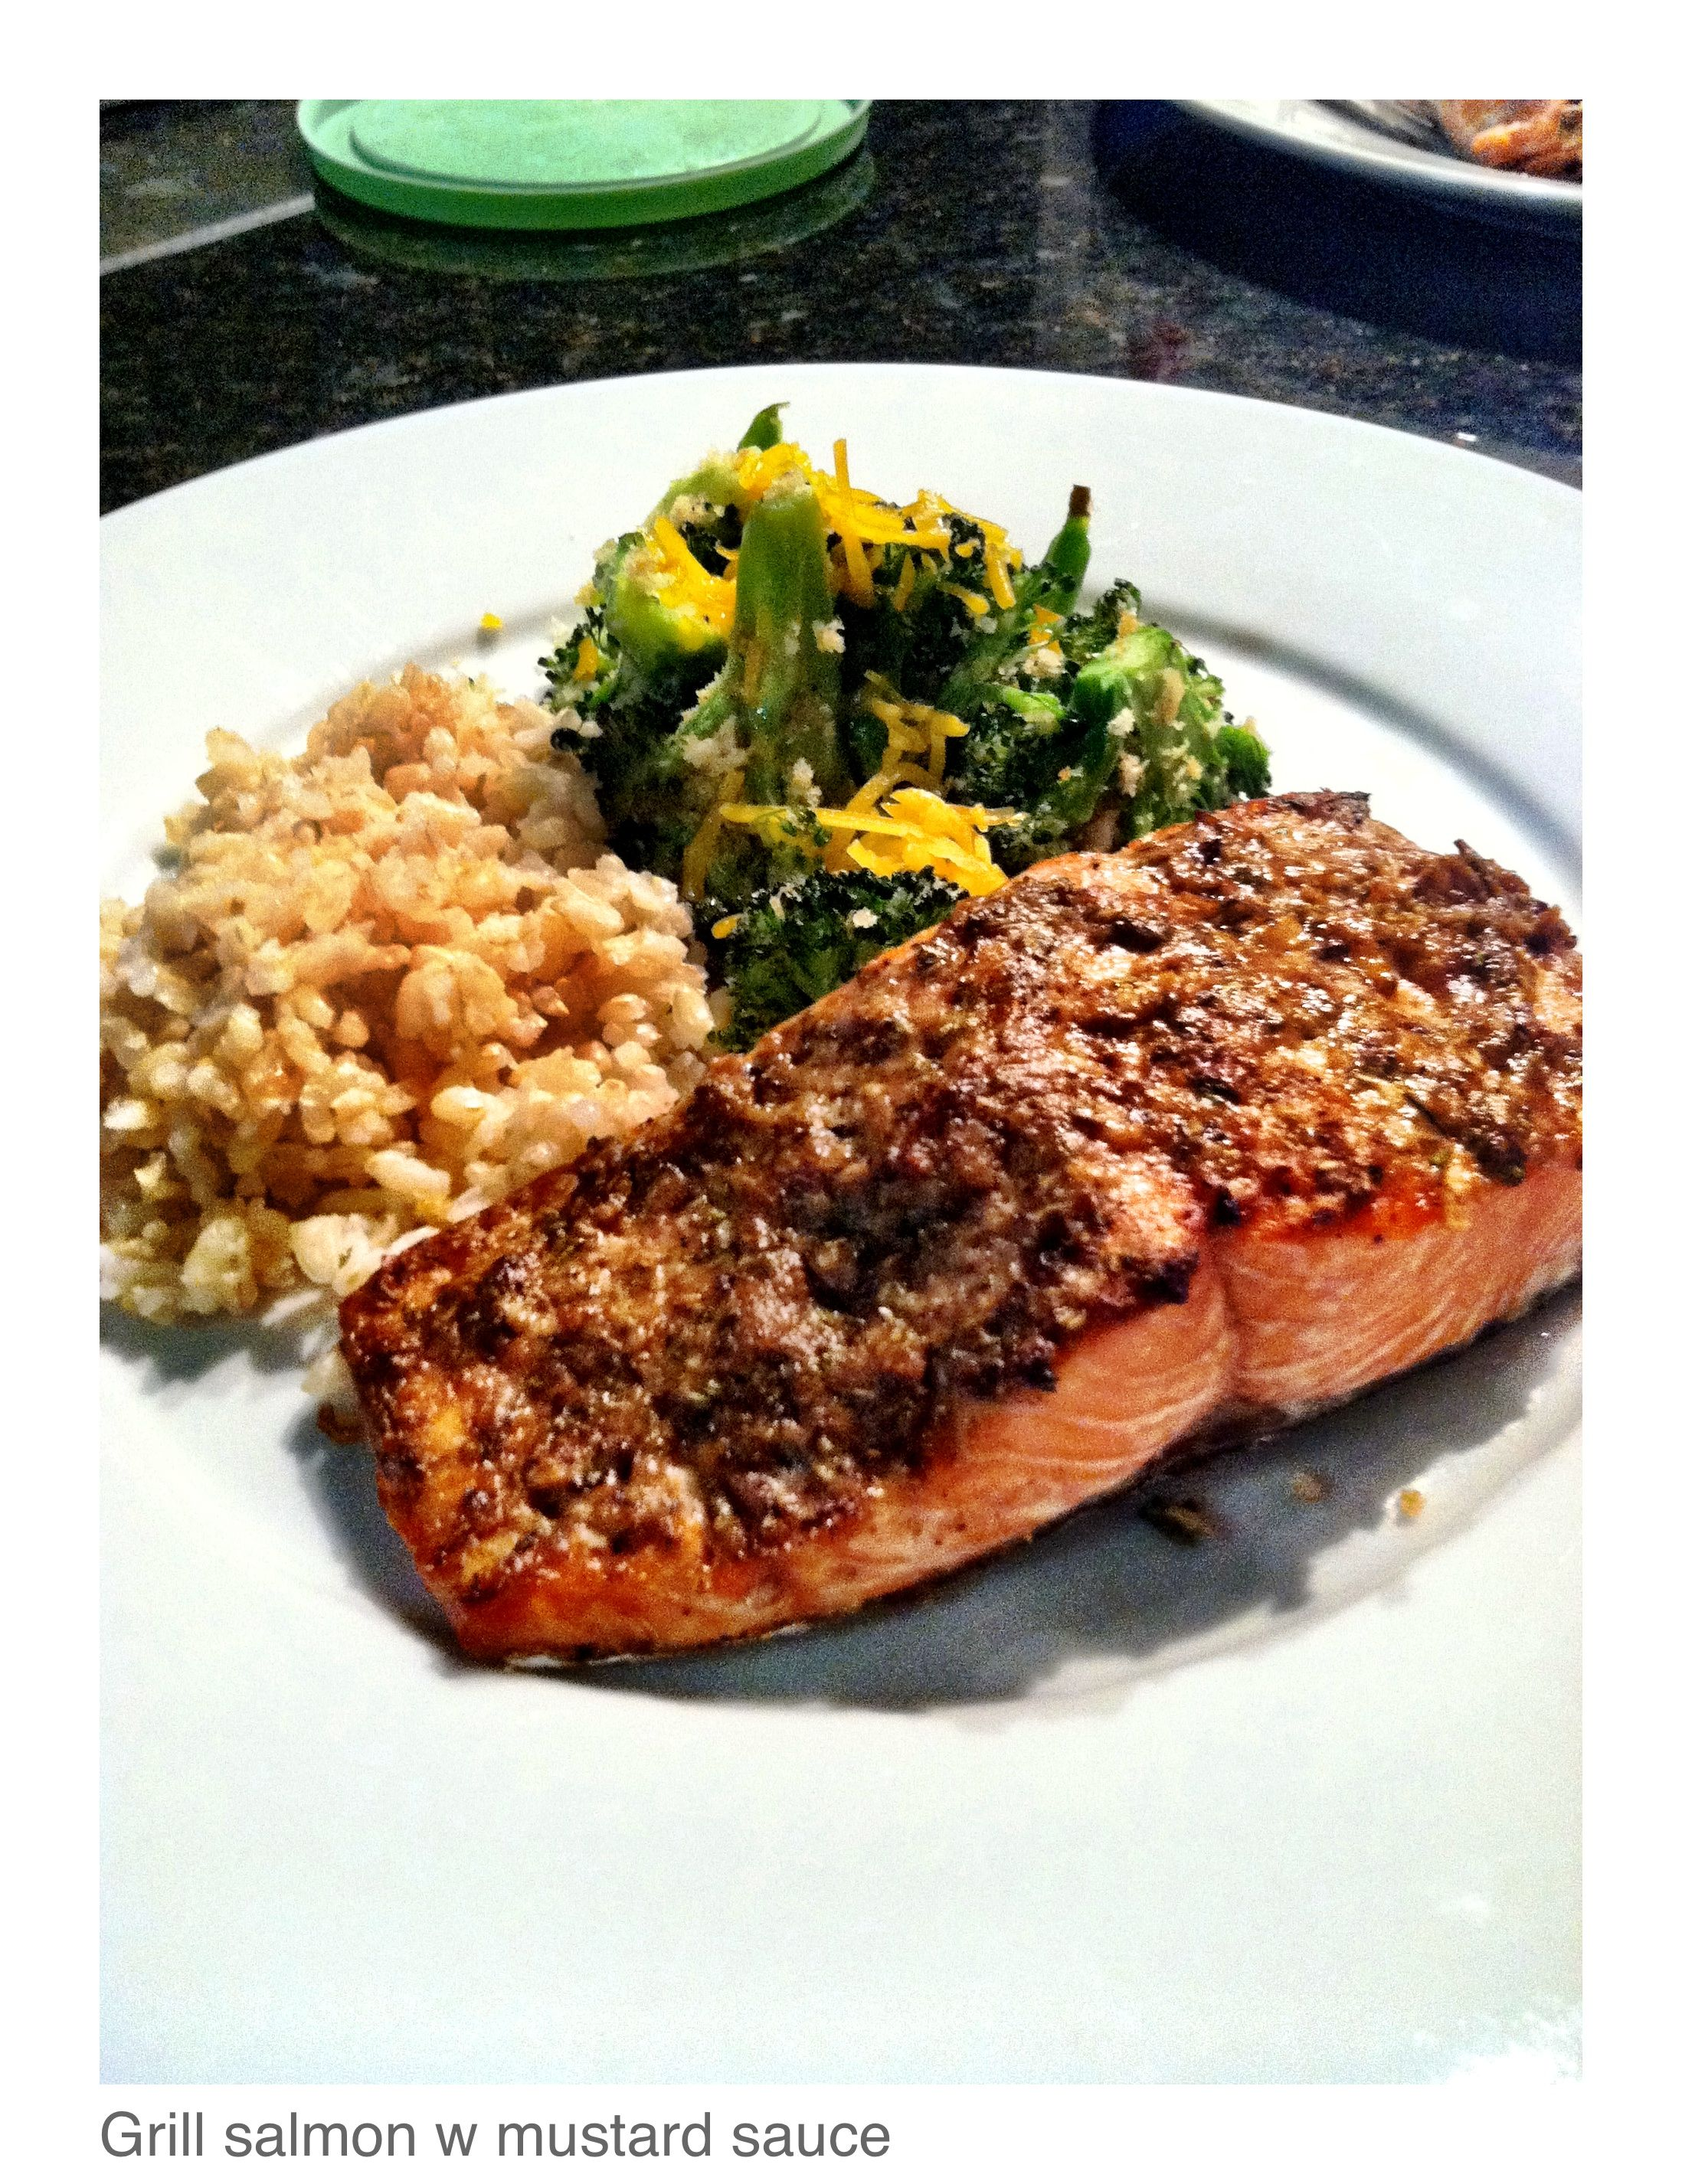 Grilled Salmon w/ Mustard sauce